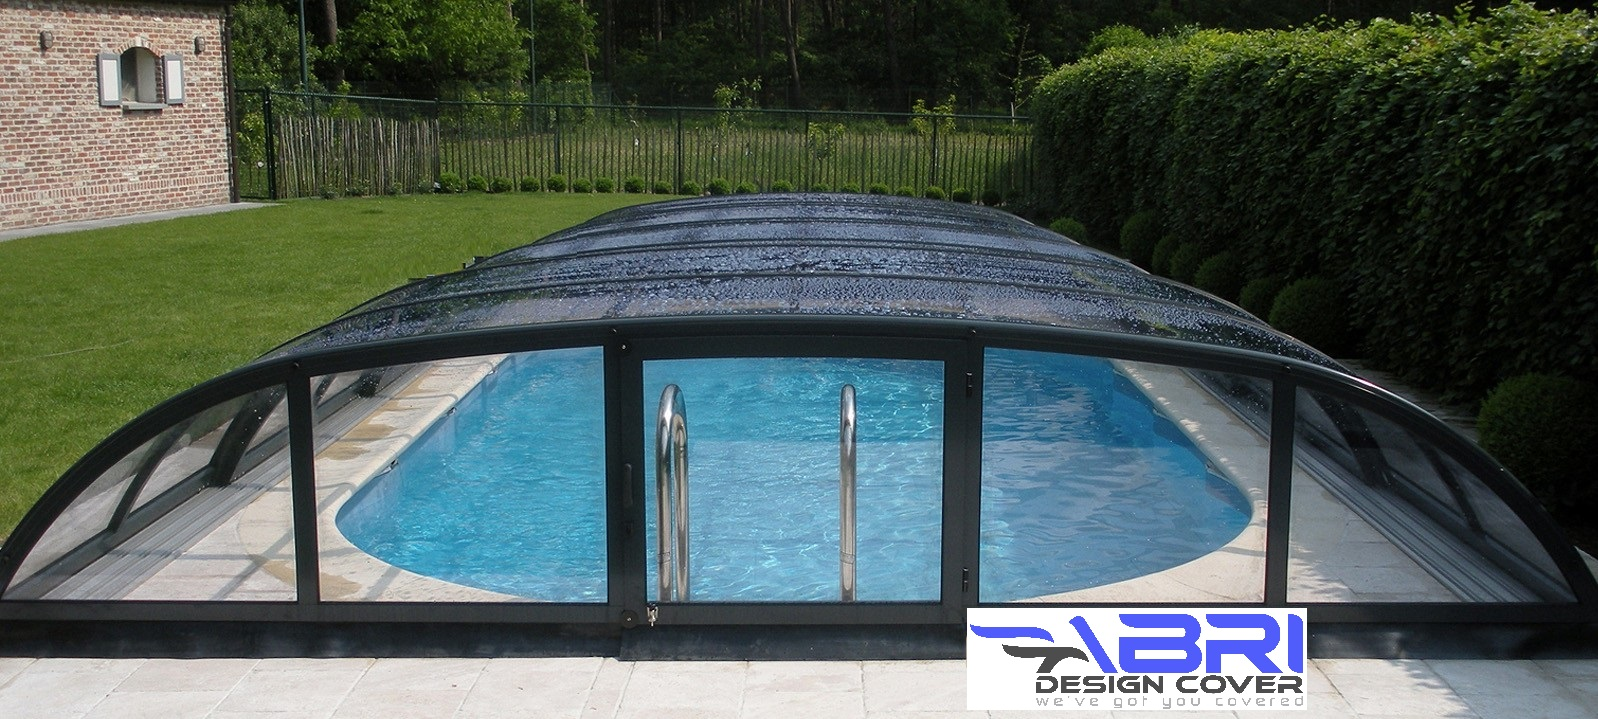 & Swimming pool covers Canada